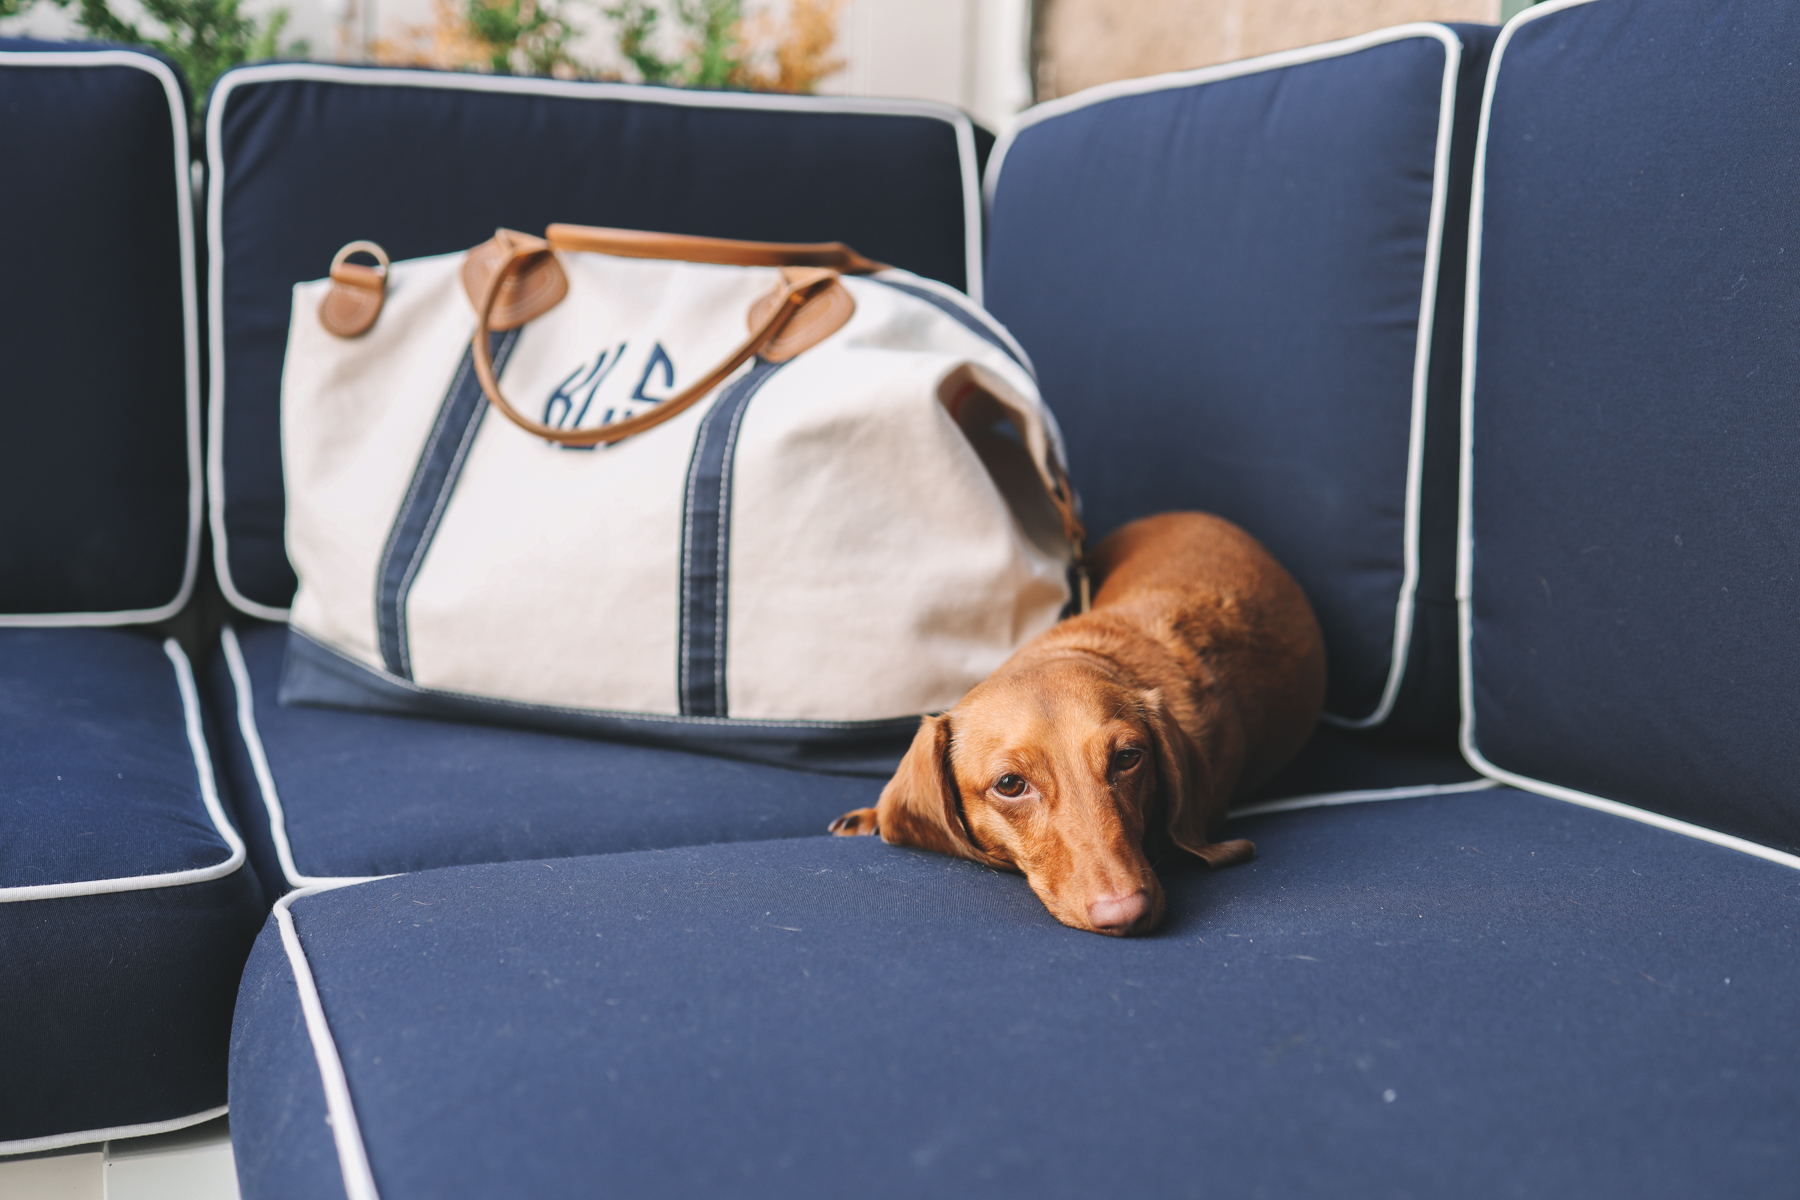 a dog on the sofa that is navy with a white and blue bag